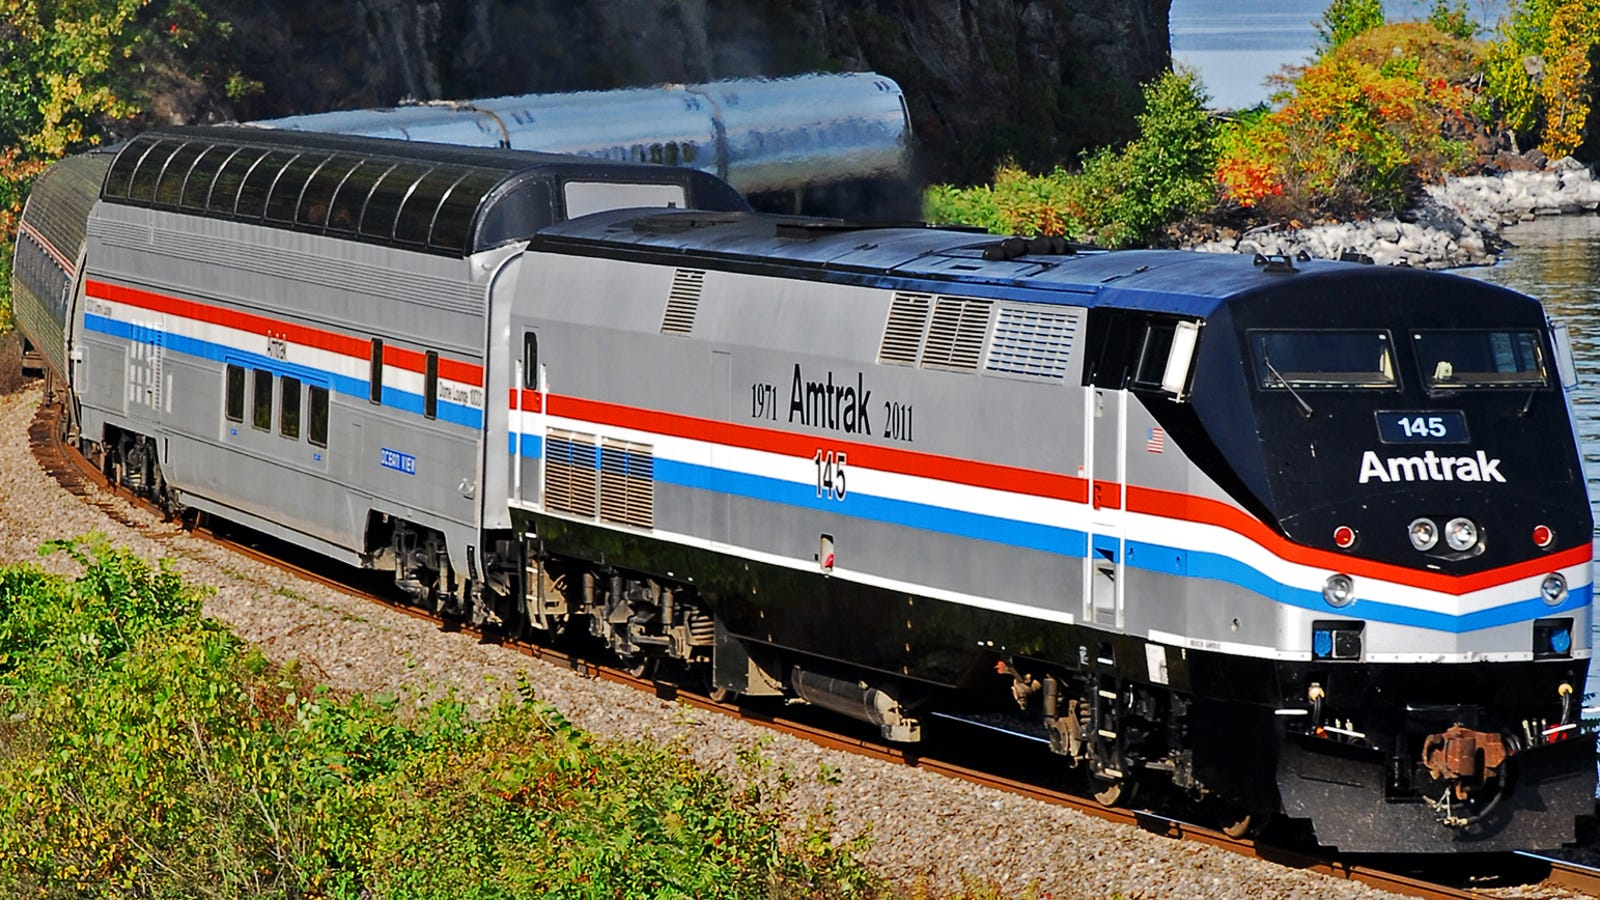 The positions of the trains, which are shown on each of the regional maps, is derived from Amtrak's website. The status of these trains is only as accurate as the information Amtrak's website provides.